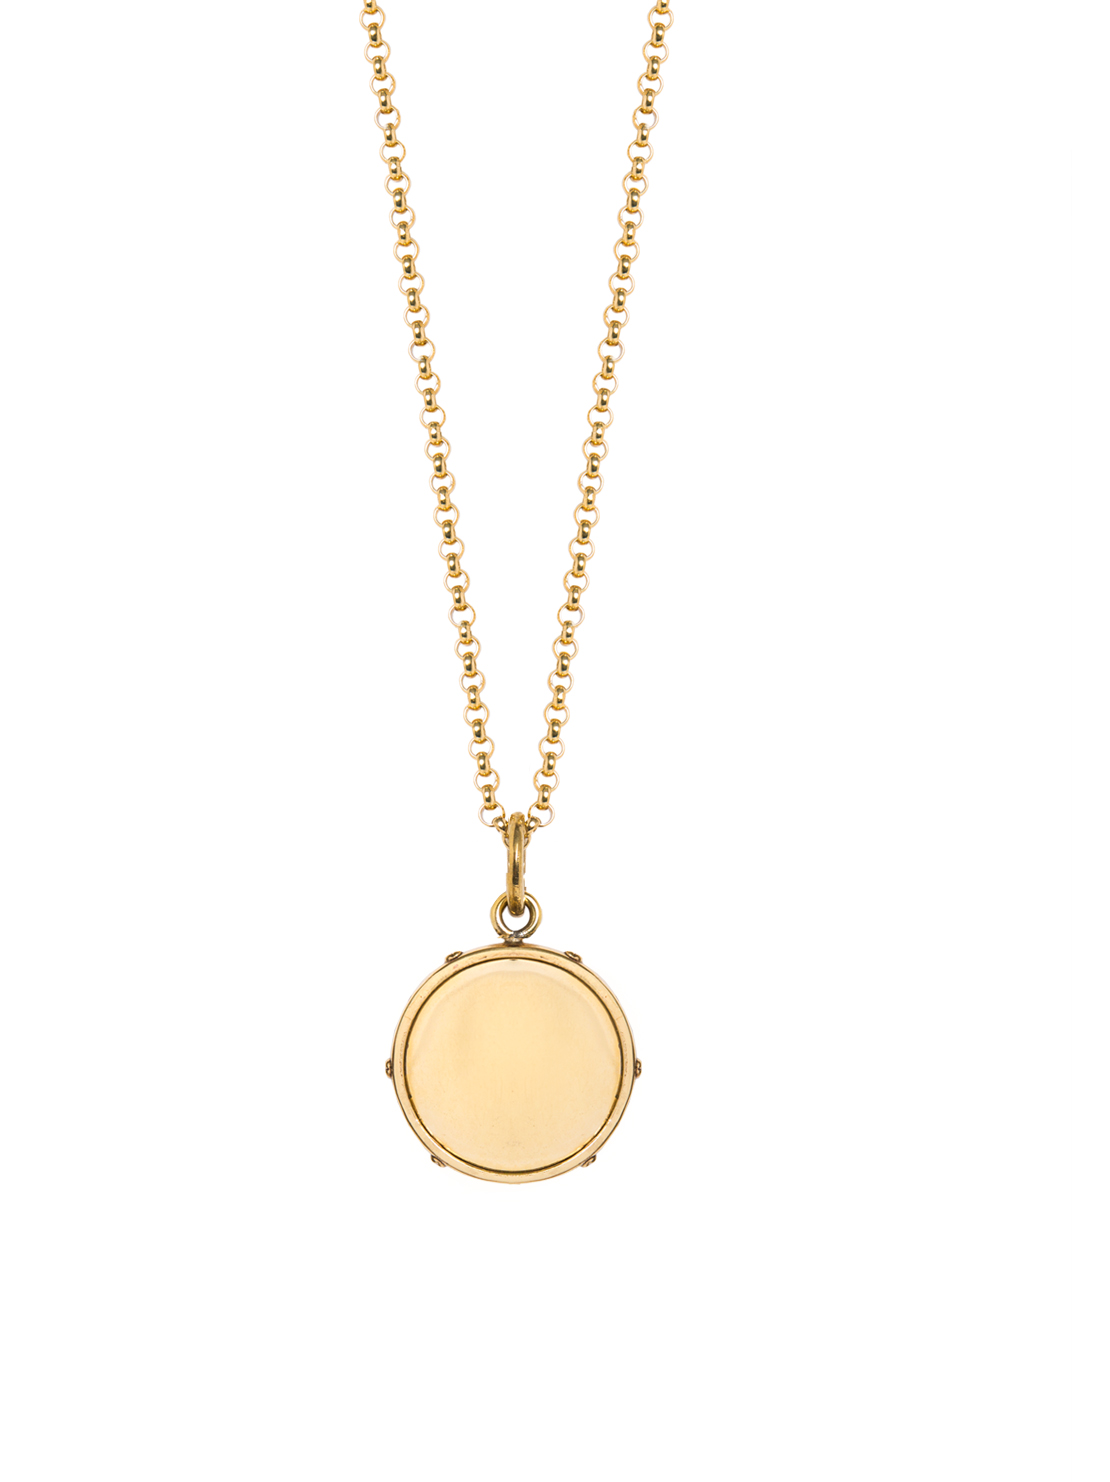 Medium Gold Disc On Belcher Chain